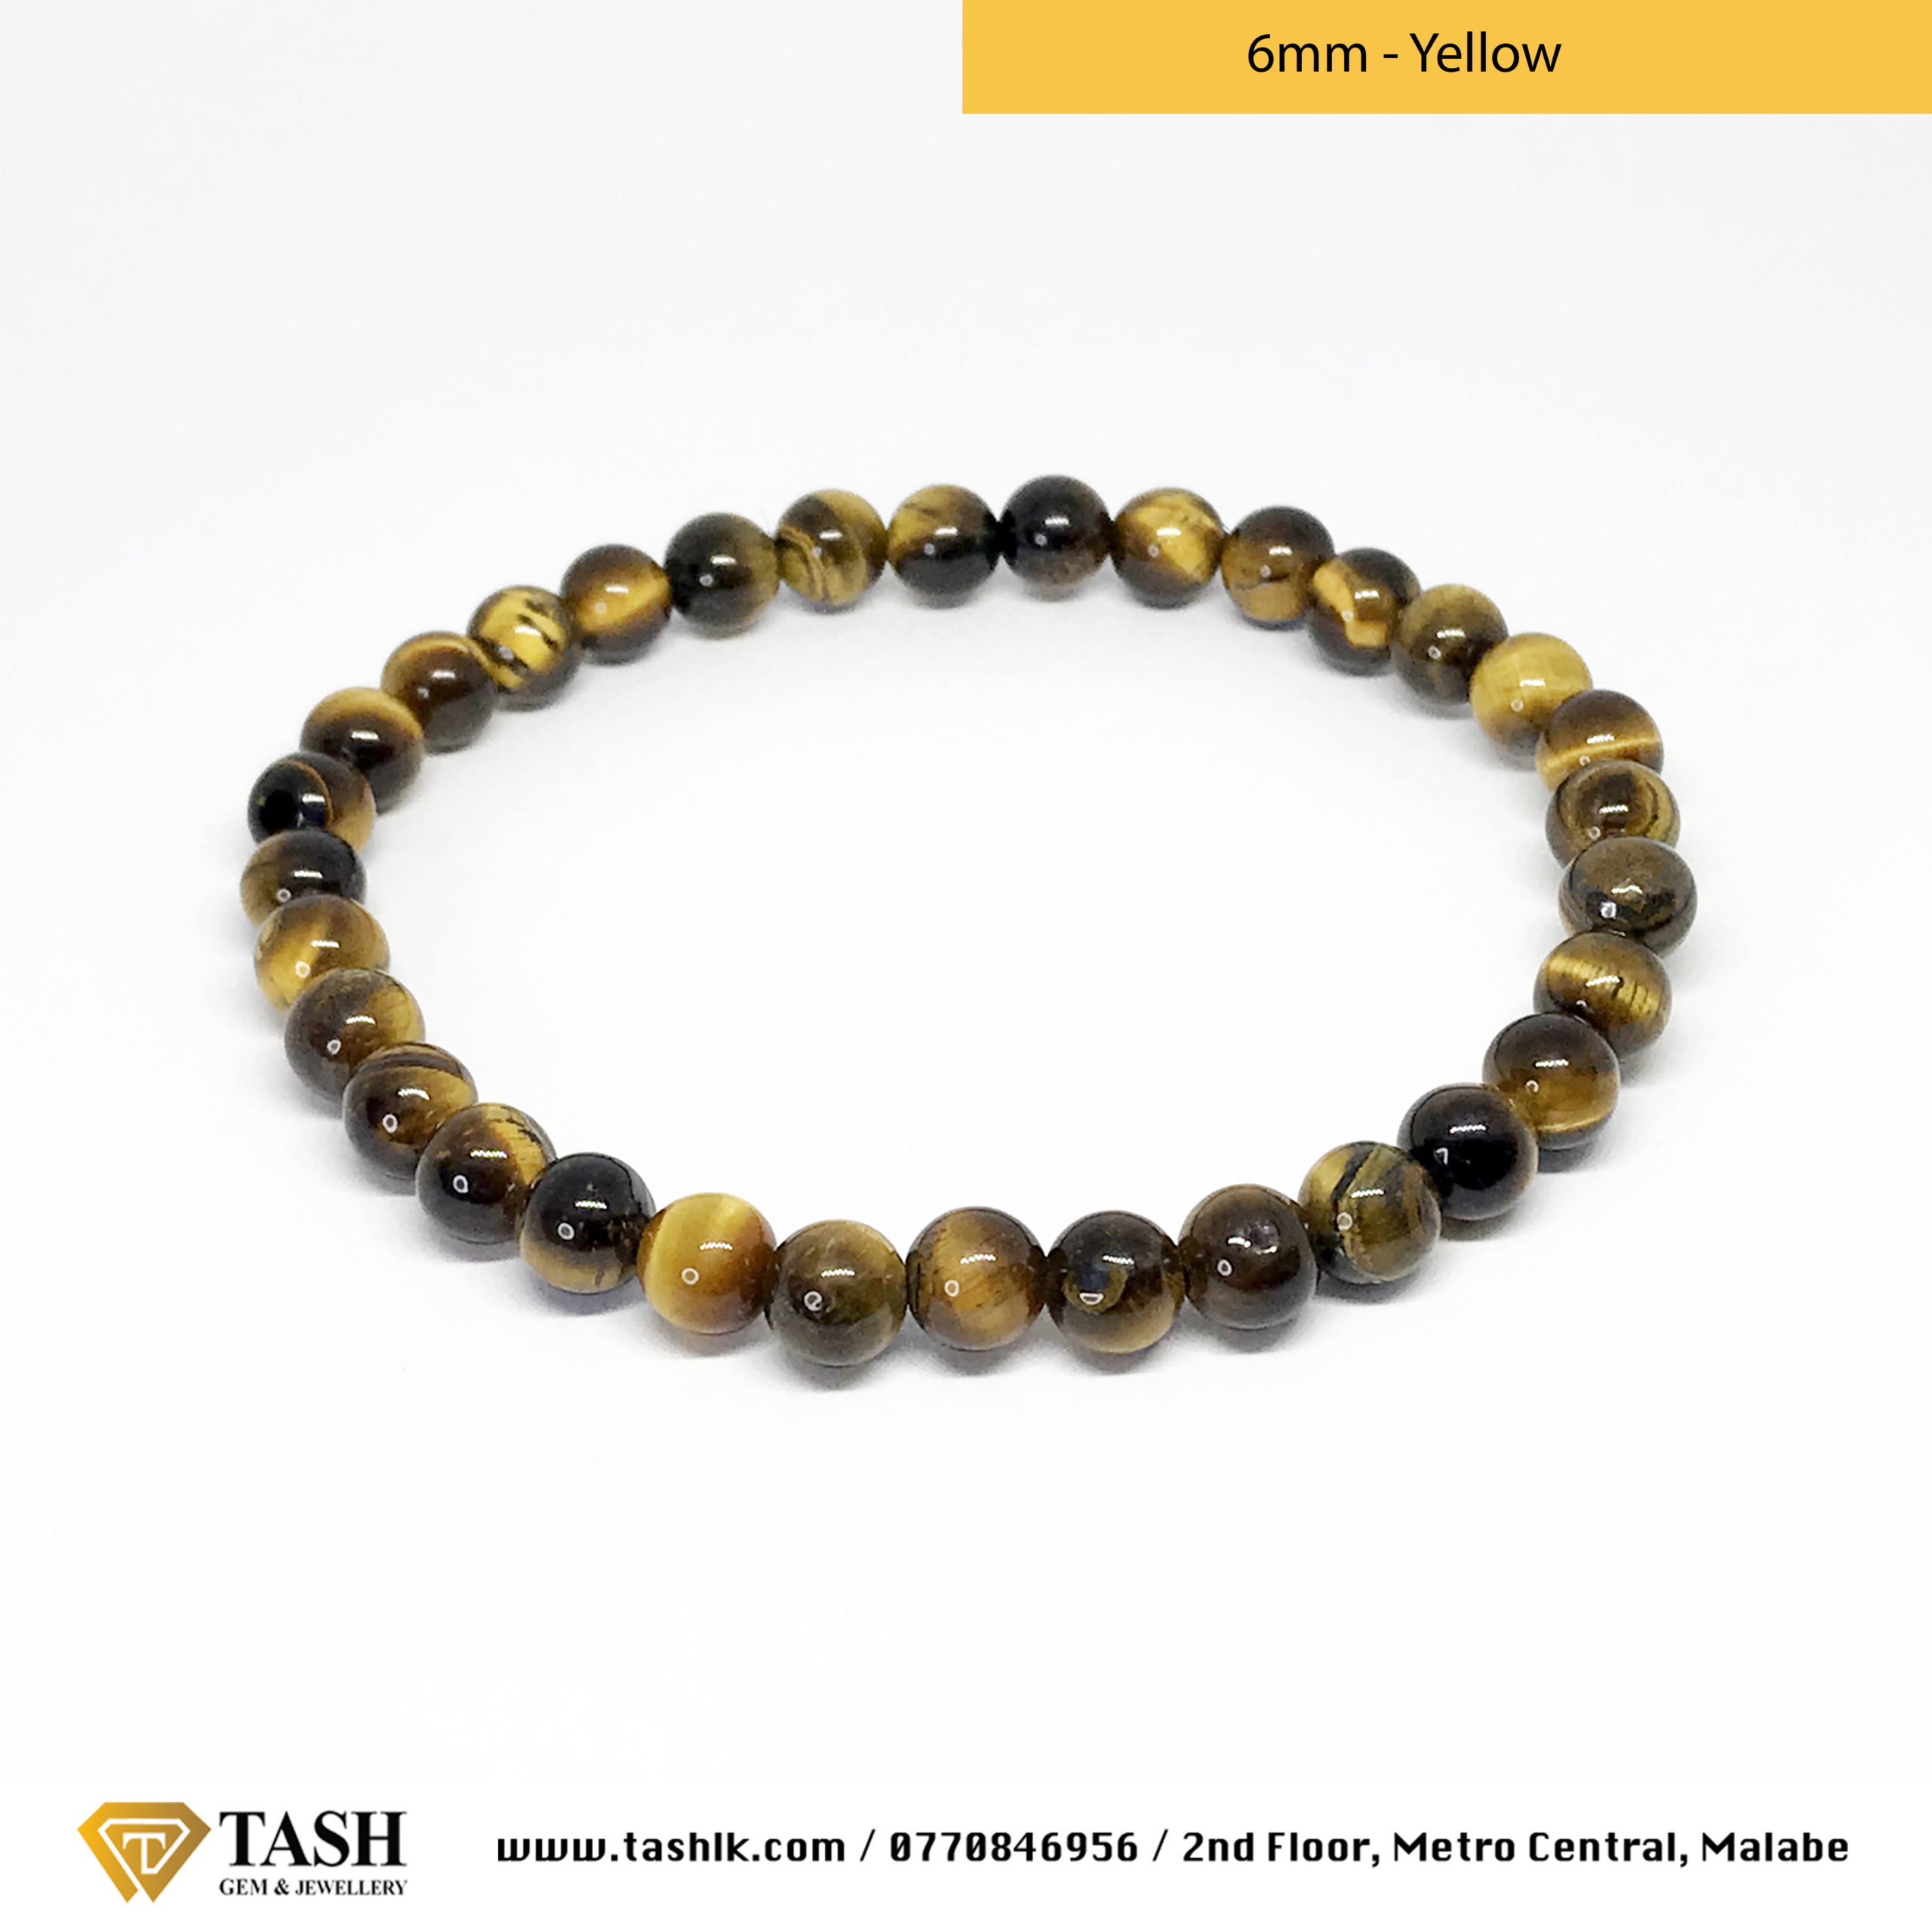 Tigers Eye Bracelet - Yellow